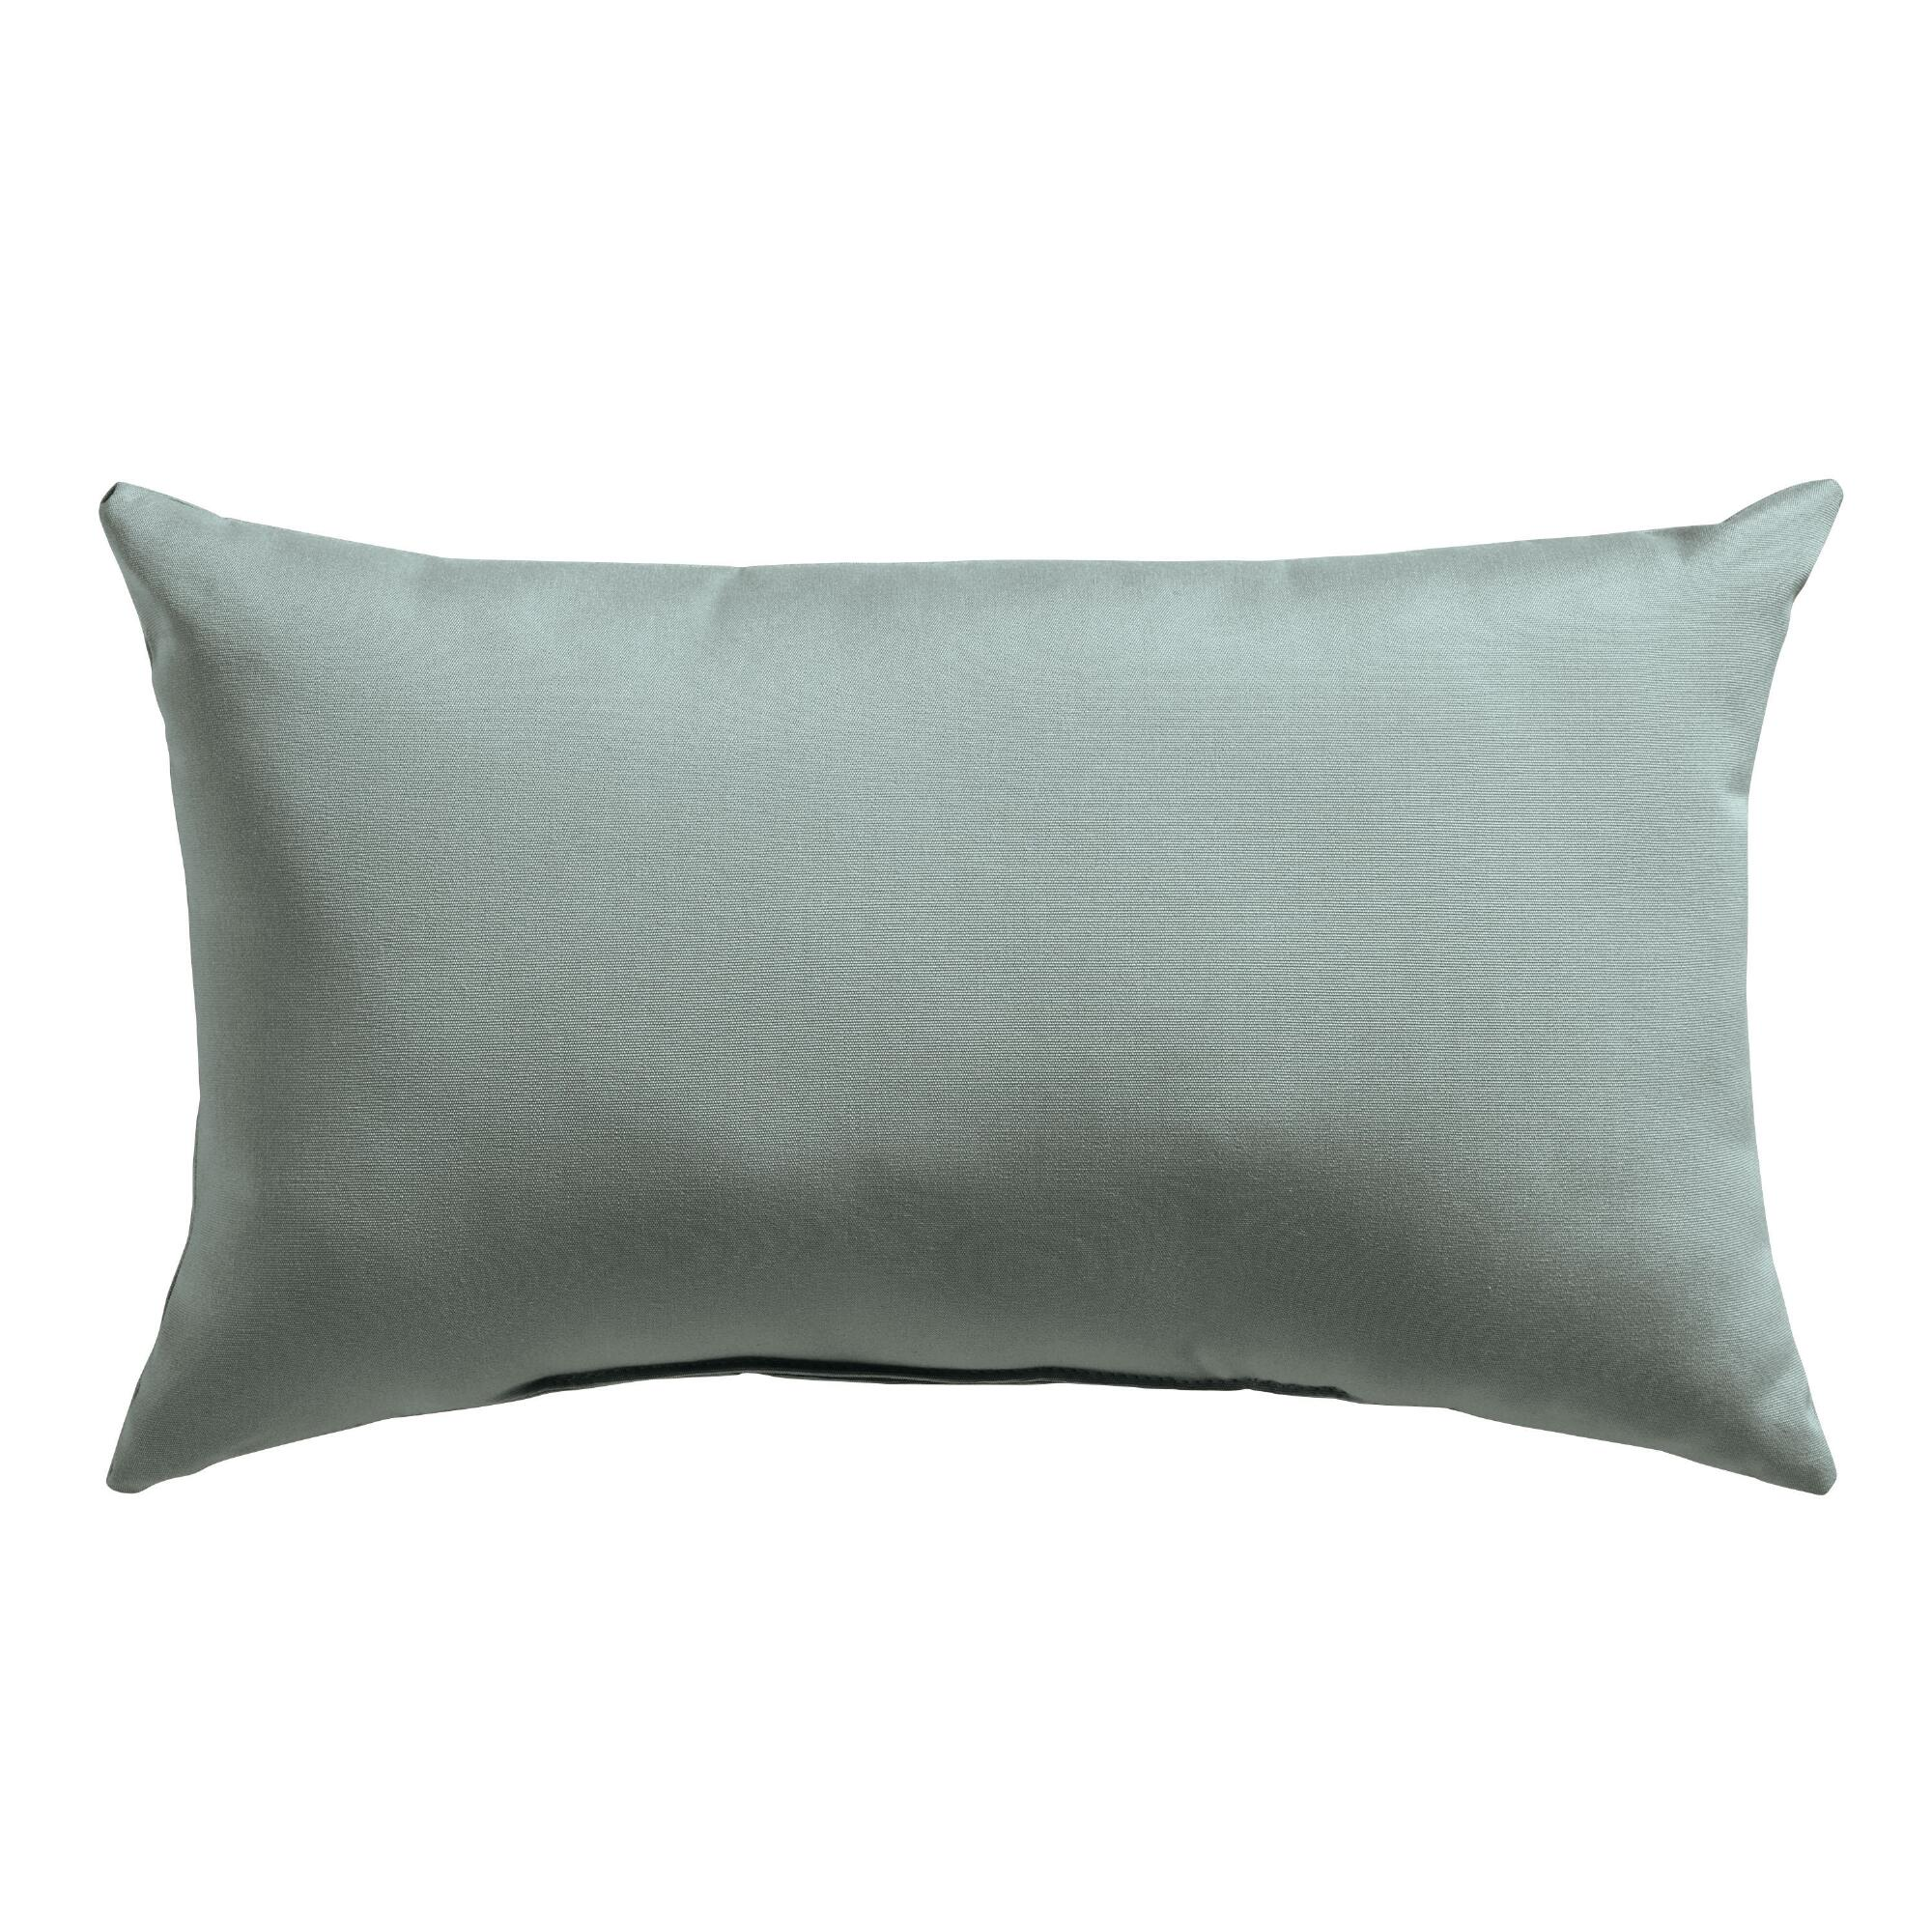 Sunbrella Spa Blue Canvas Outdoor Patio Lumbar Pillow by World Market